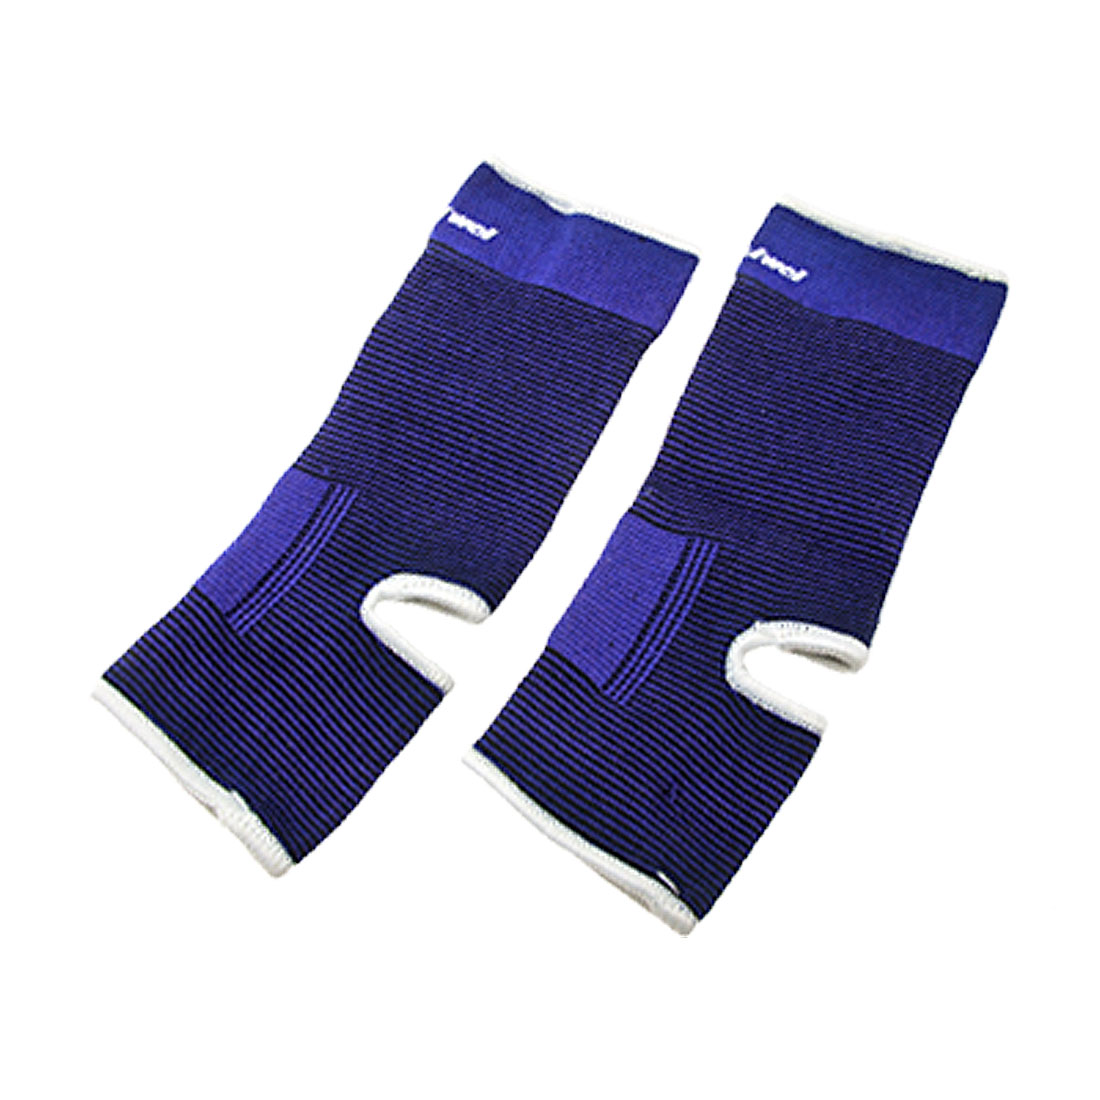 Elastic Ankle Supporter Band Pad Brace Protector Blue